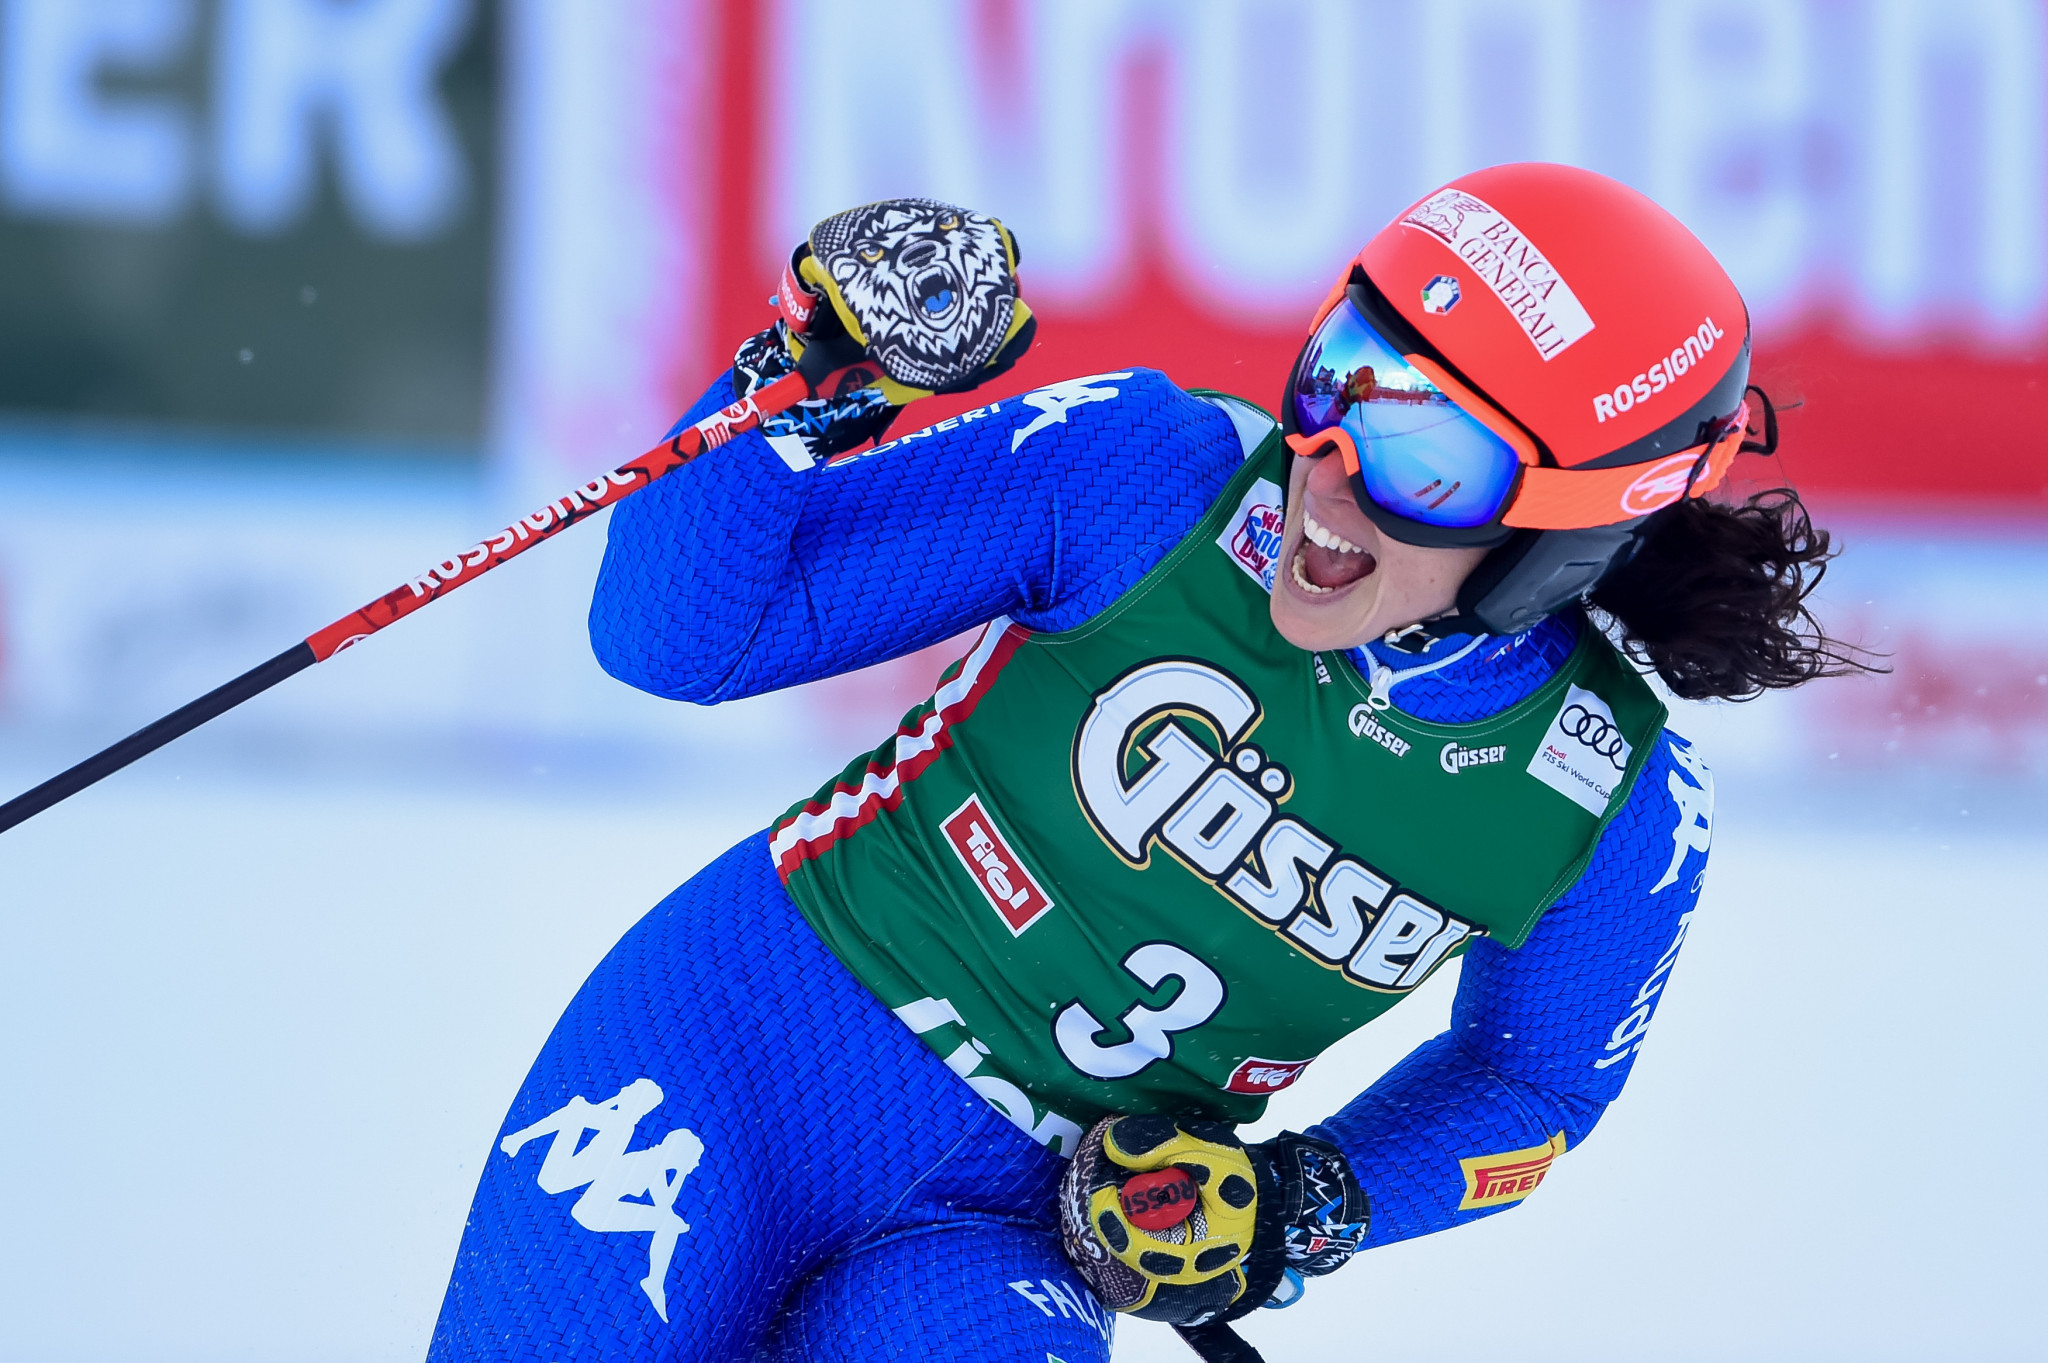 Brignone claims super-G title in Bad Kleinkirchheim